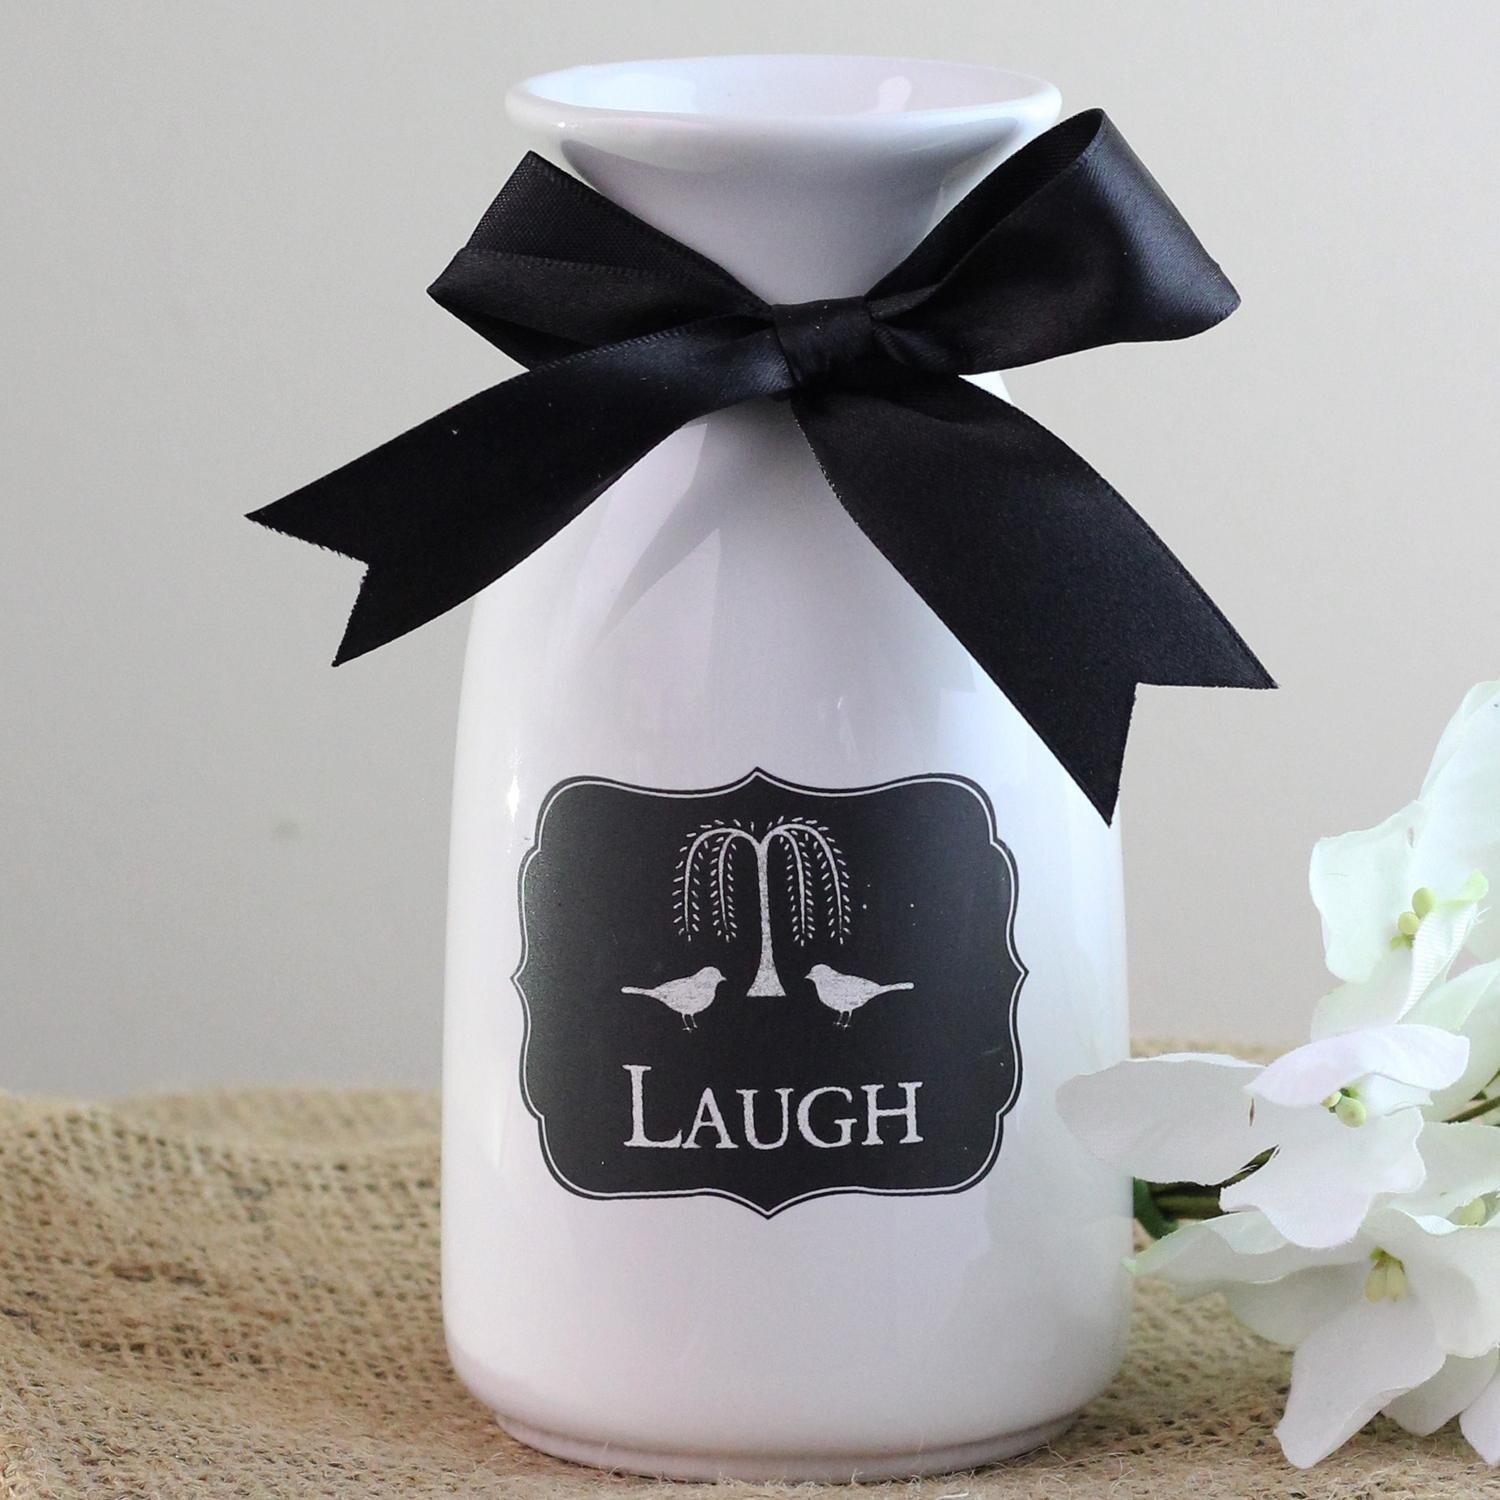 6 Decorative White Milk Bottle Laugh Vase With Black Bow Free Shipping On Orders Over 45 22882365